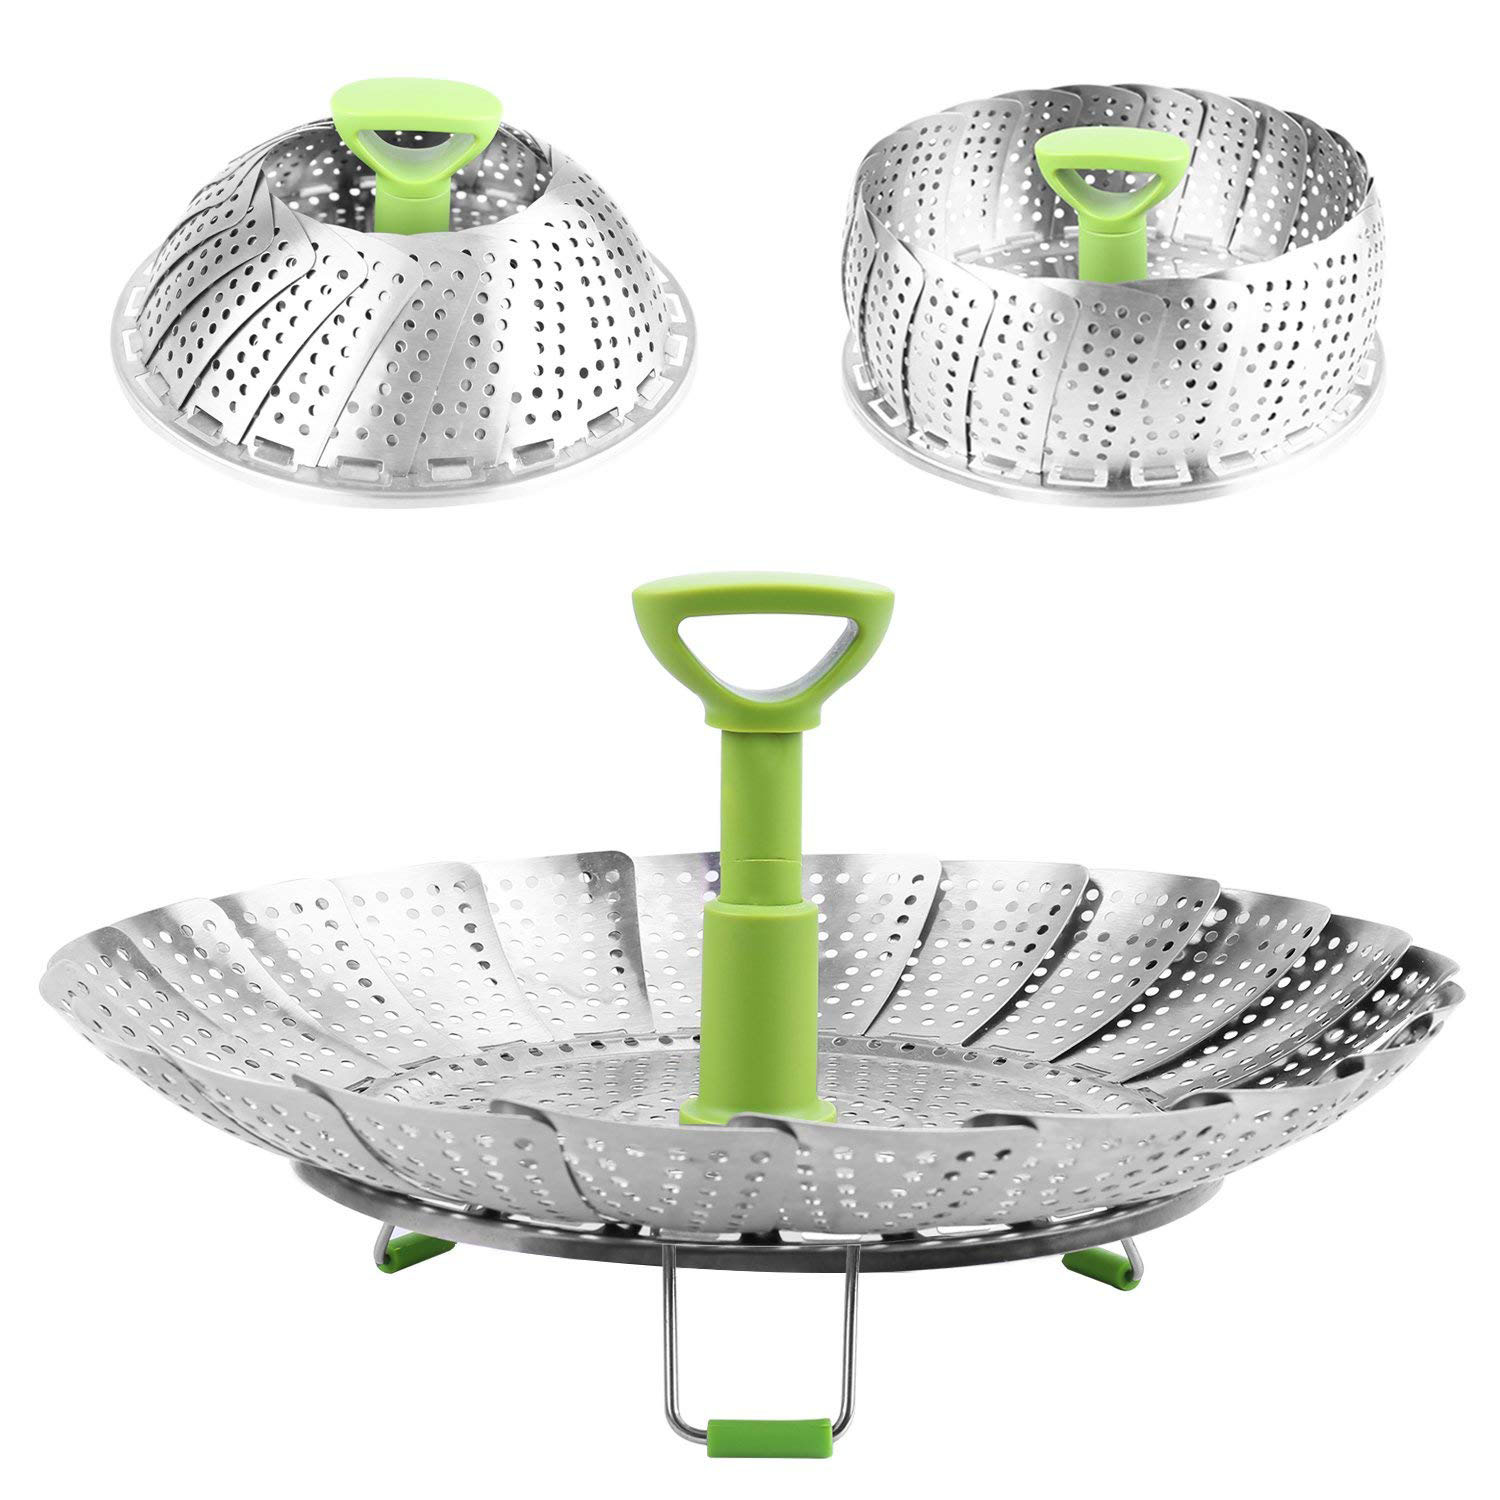 Stainless Steel Vegetable Steamer Basket Folding Steamer Insert For Veggie Fish Seafood Cooking Expandable  Fit Various Size Pot